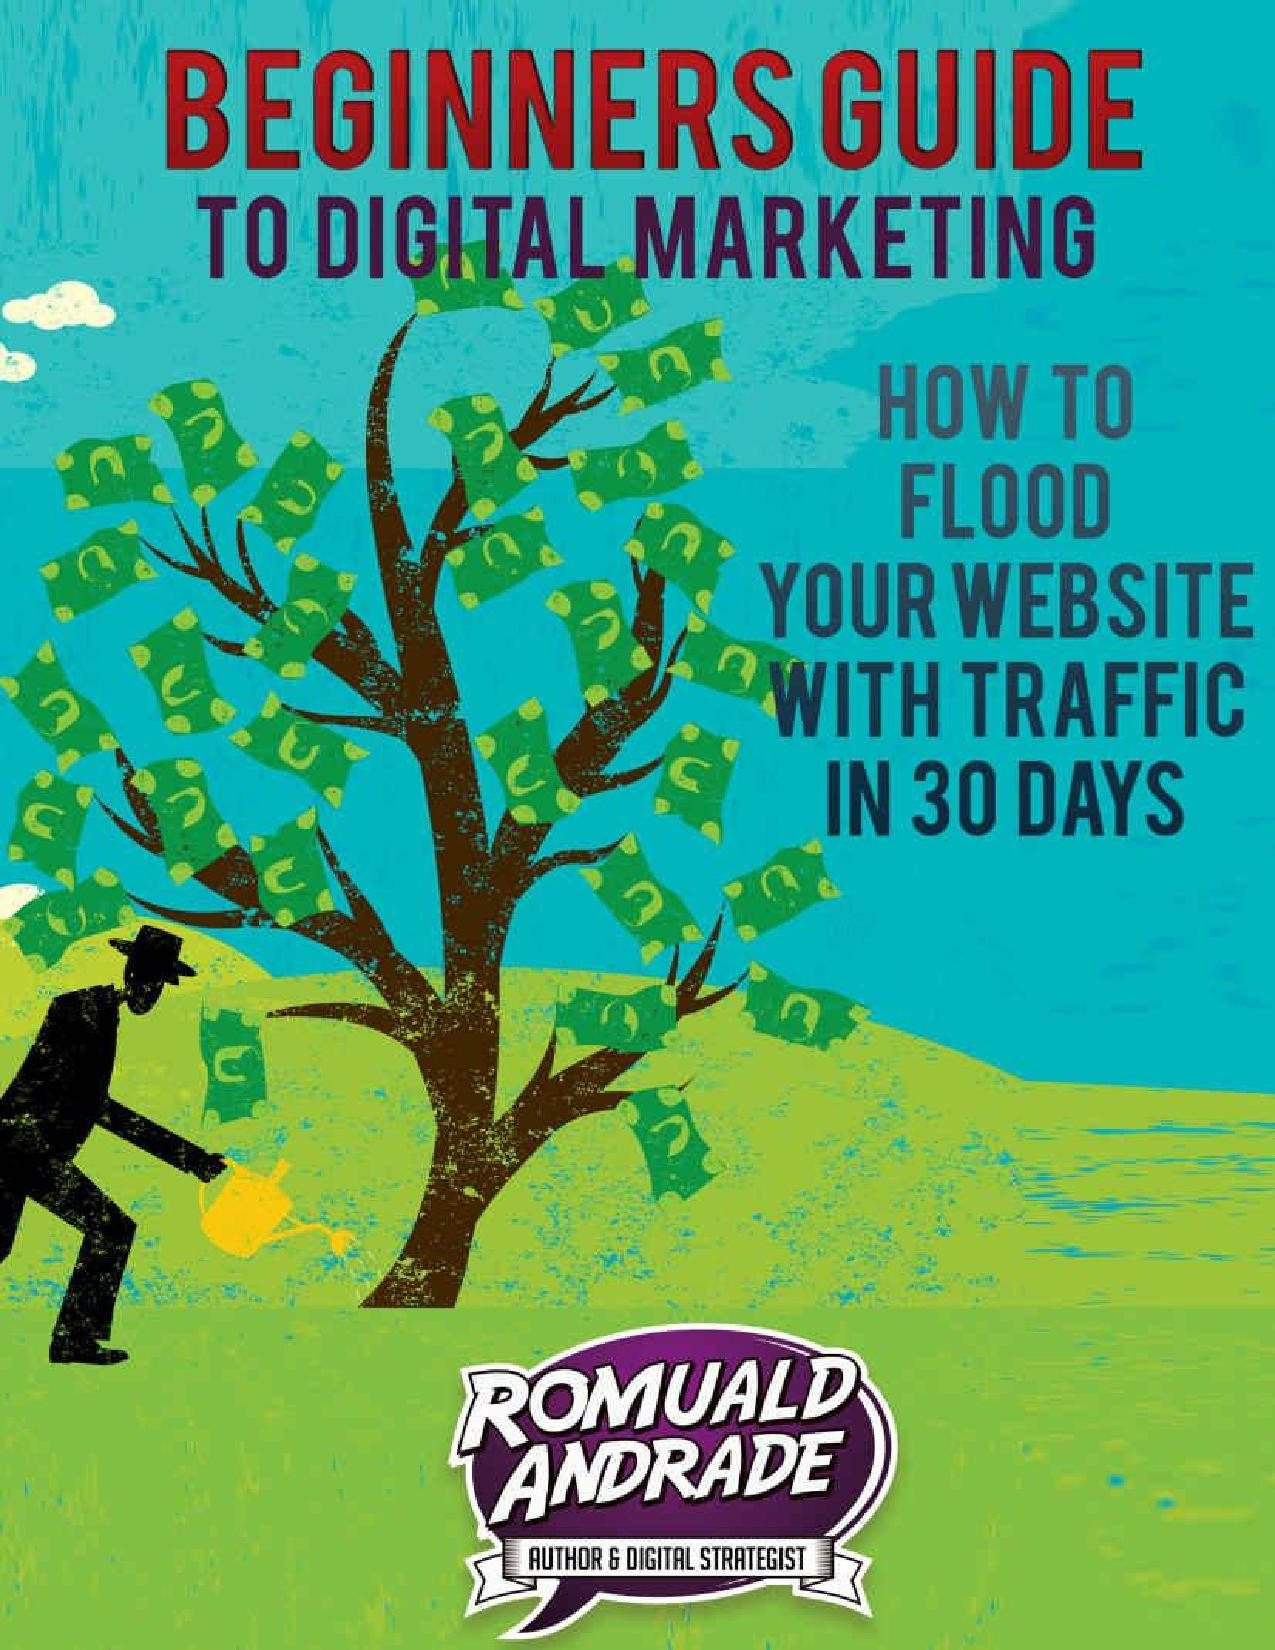 Beginners Guide to Digital Marketing – How to Flood Your Website with Traffic in 30 Days : Digital Marketing Guide